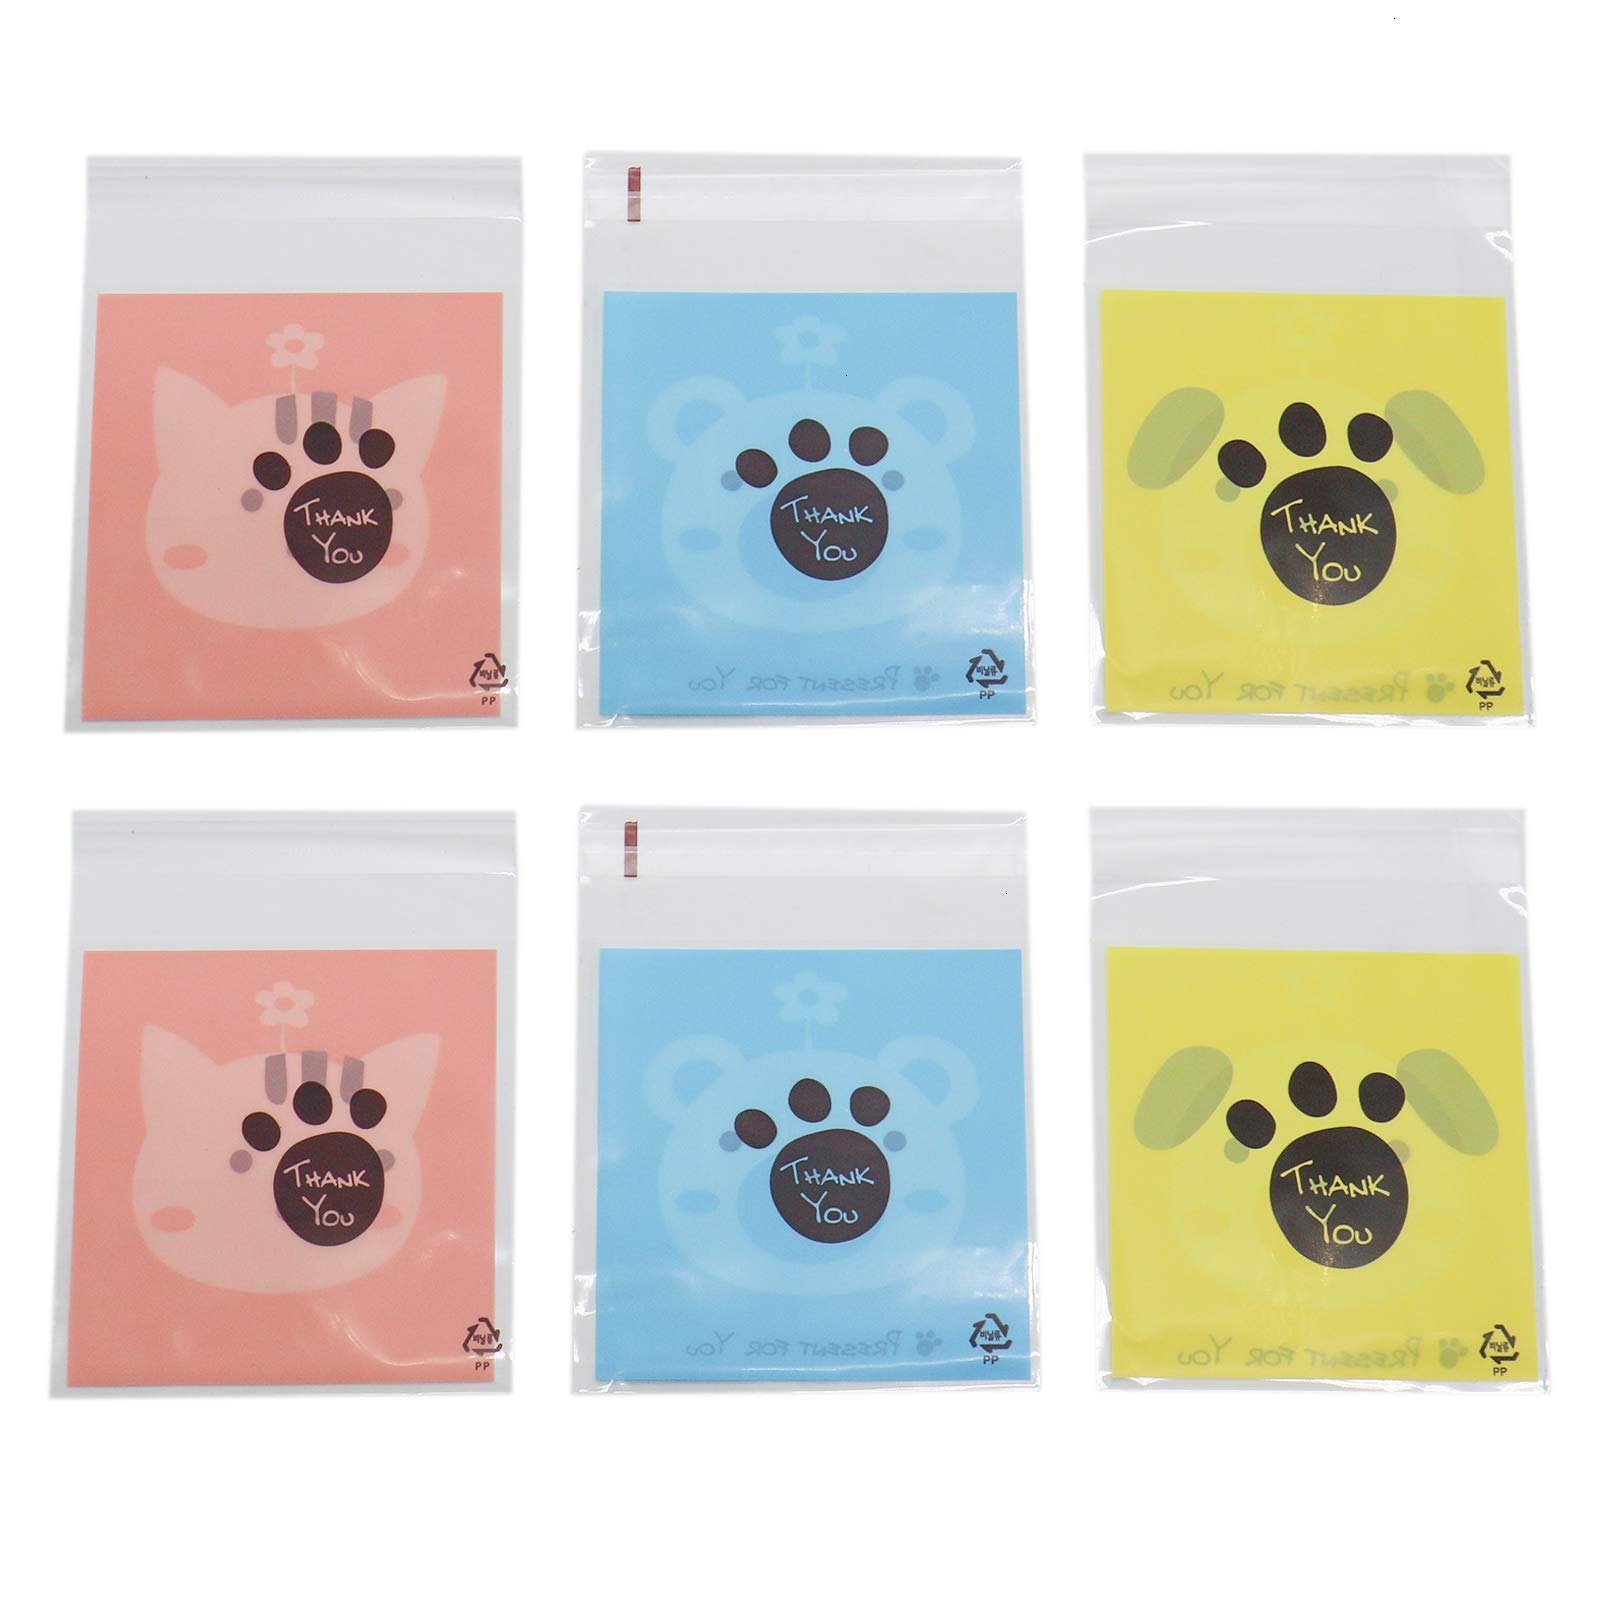 WSSROGY 300 Pcs Cute Animals Candy Cookie Bags Self-adhesive for Gift Giving Wedding Puppy Cat Bear